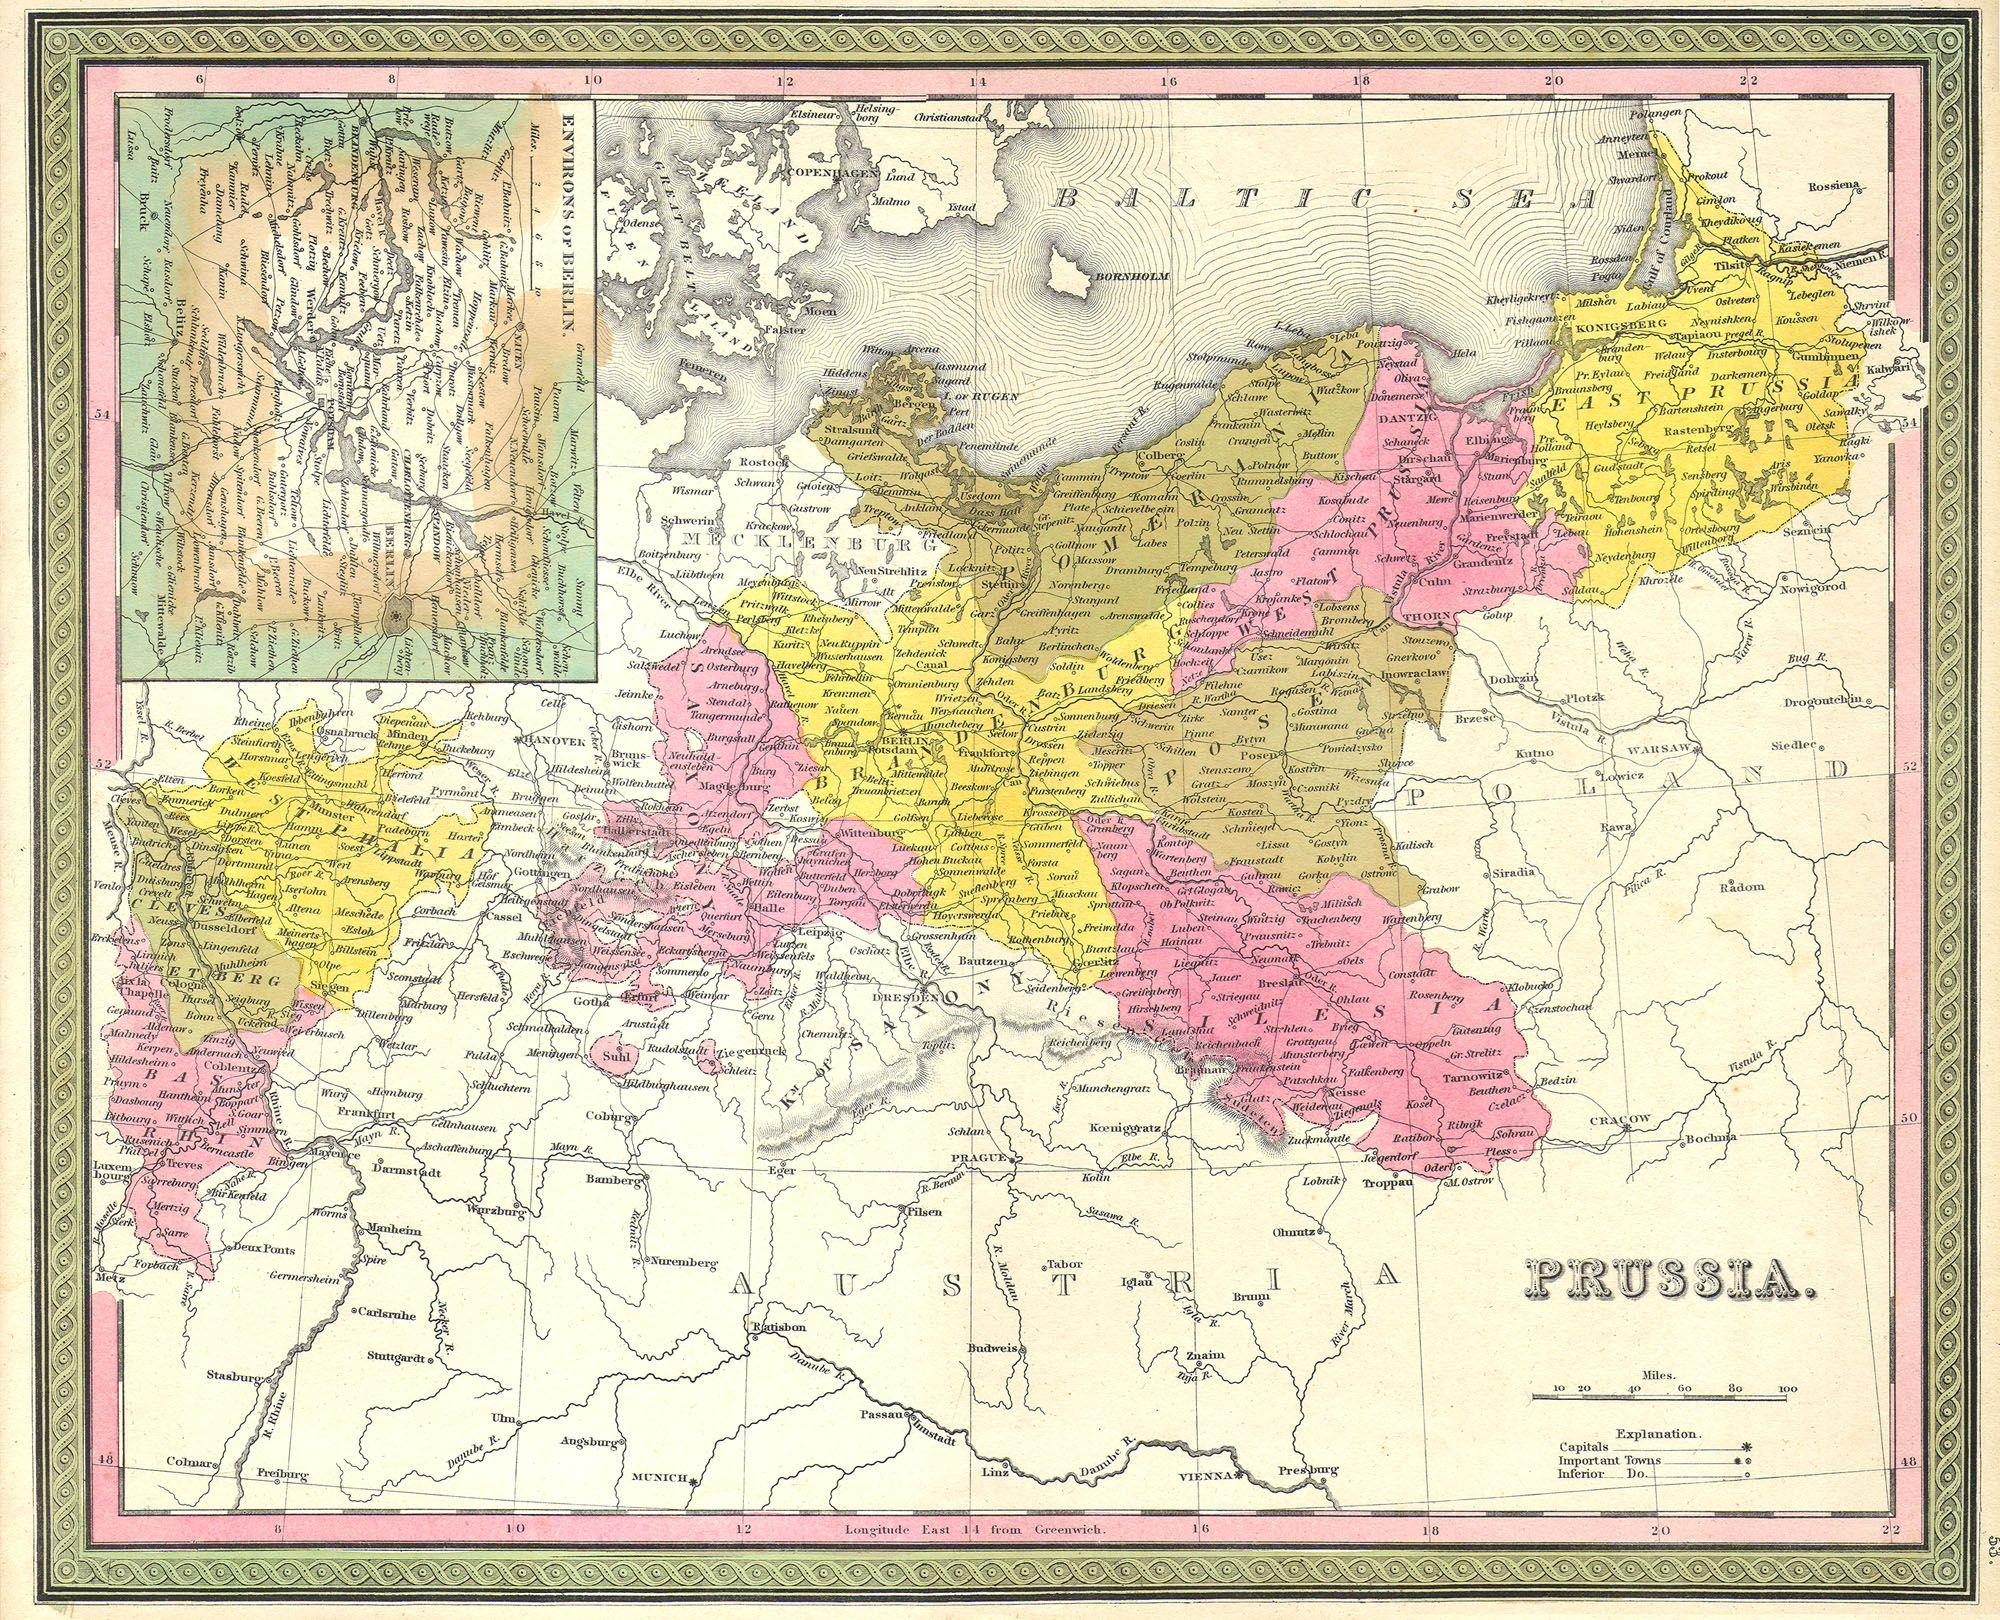 file mitchell map of prussia germany  geographicus  prussiam. file mitchell map of prussia germany  geographicus  prussia